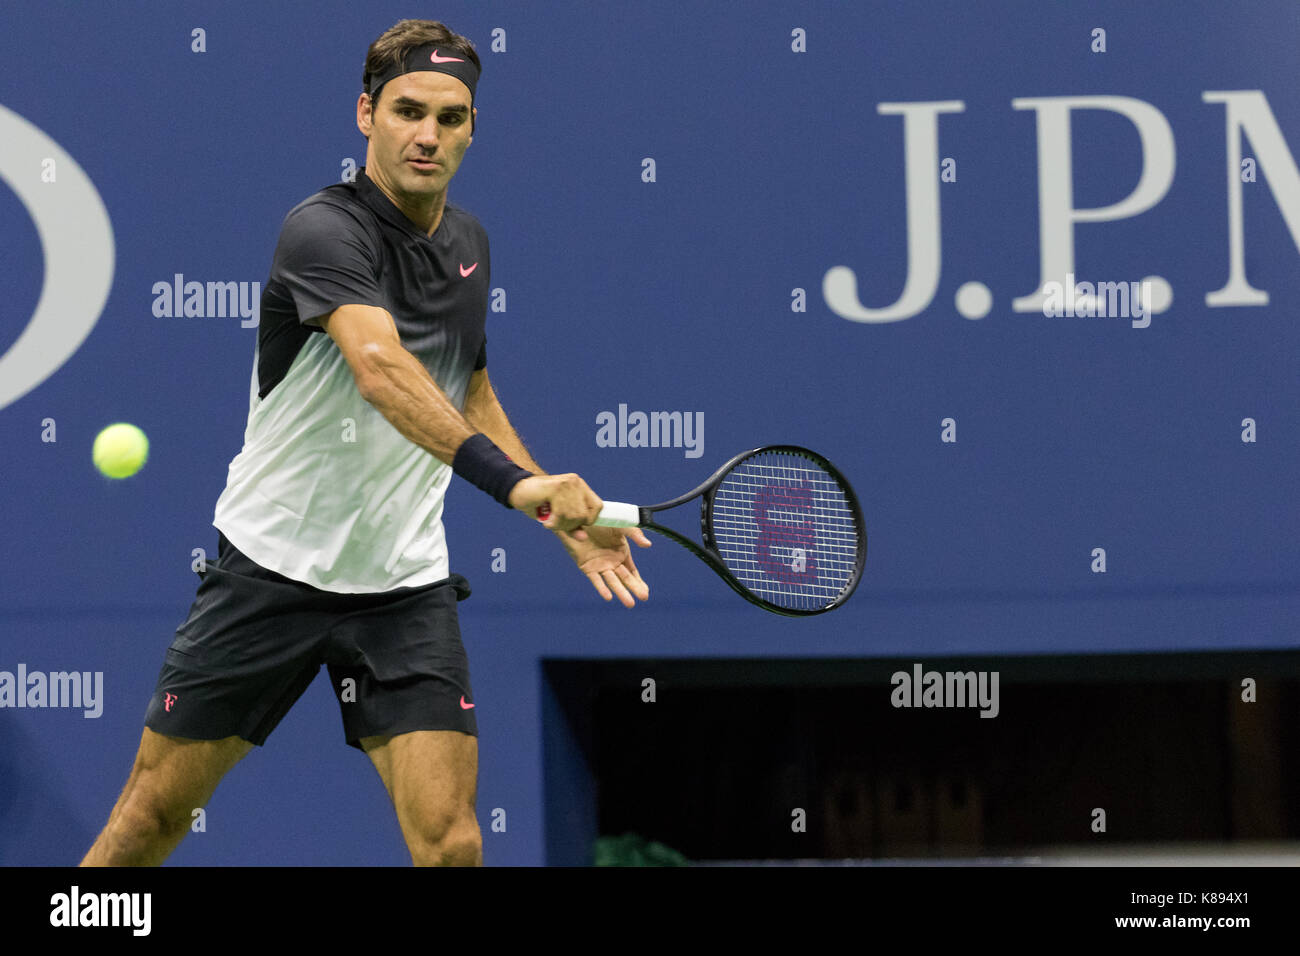 Roger Federer (SWI) competing at the 2017 US Open Tennis Championships Stock Photo